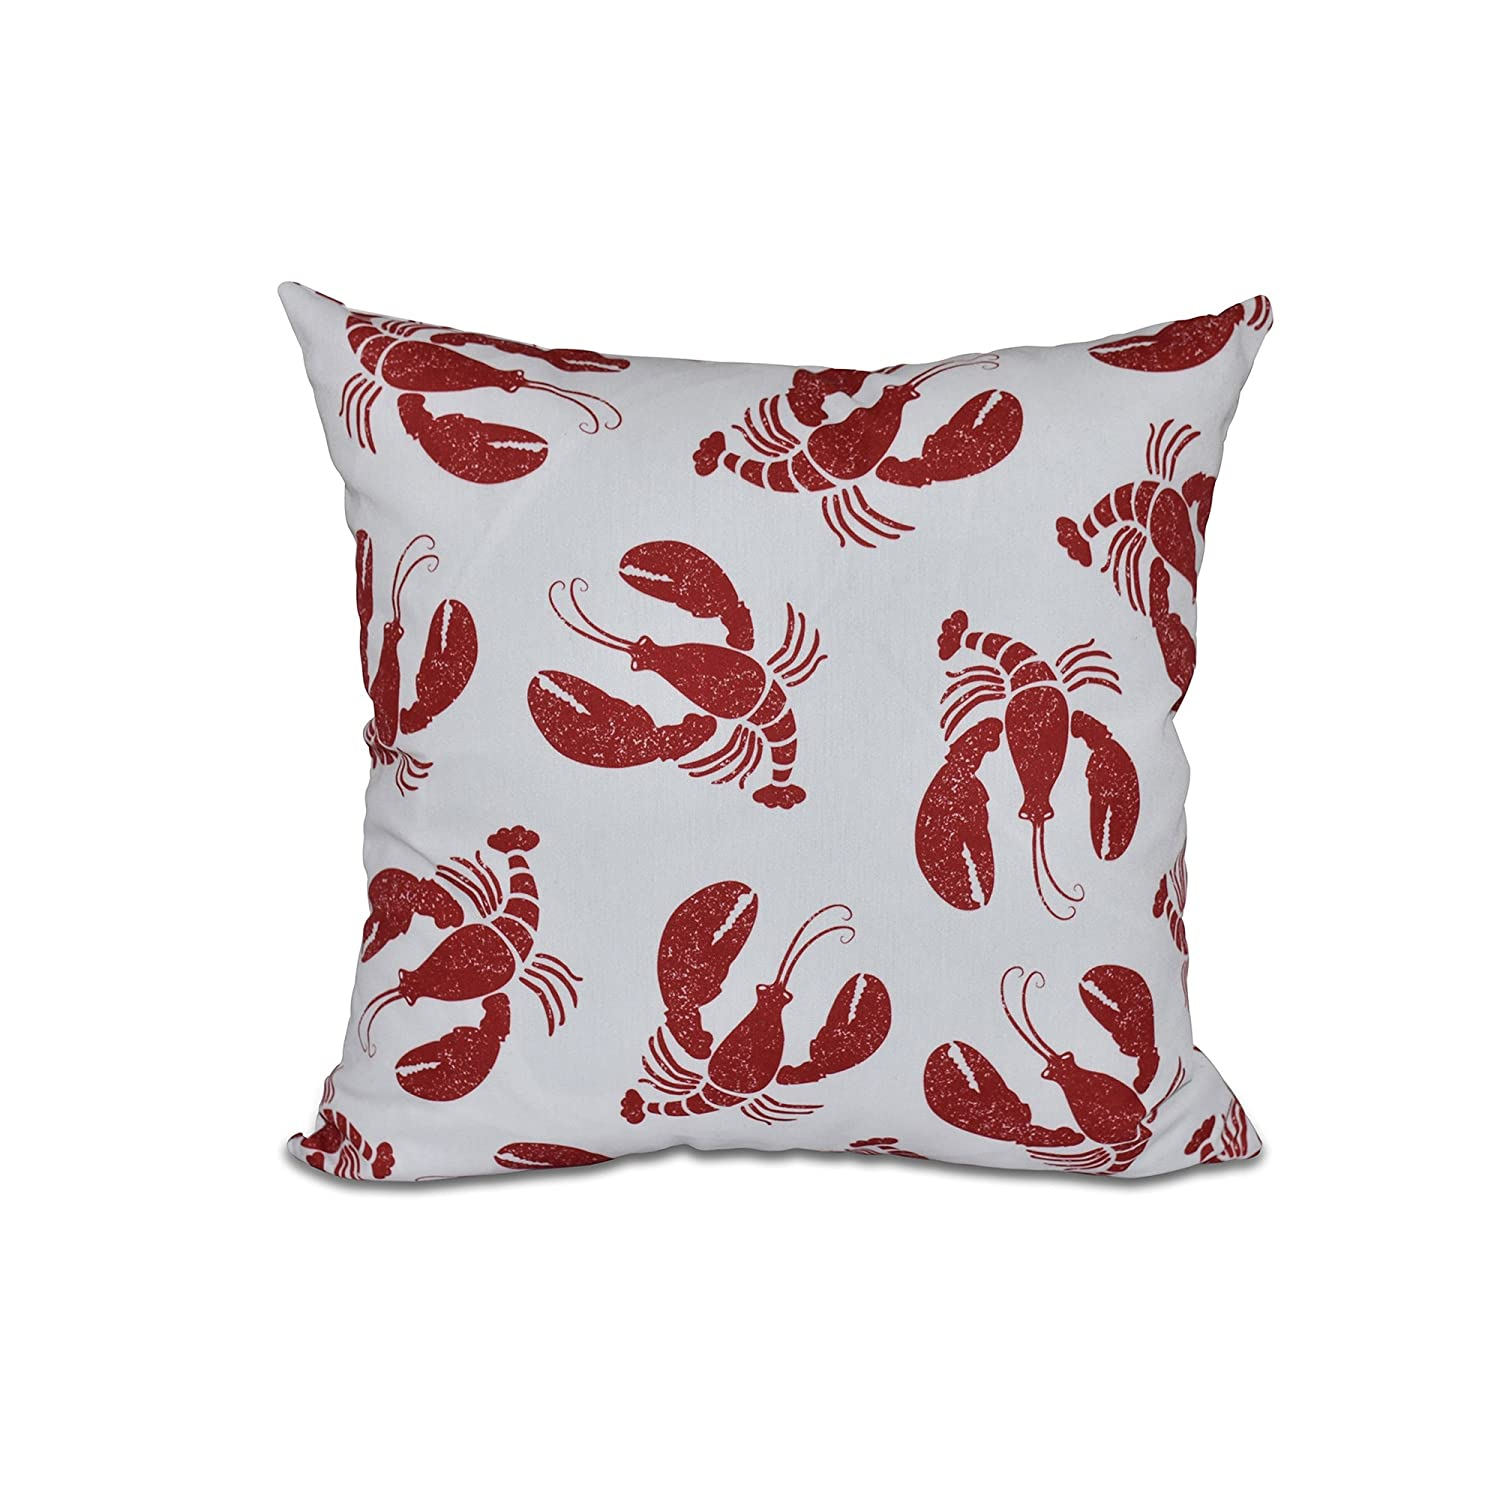 E by design PAN405WH1RE1-26 26 x 26 Lobster Fest, Animal Print Pillow Red